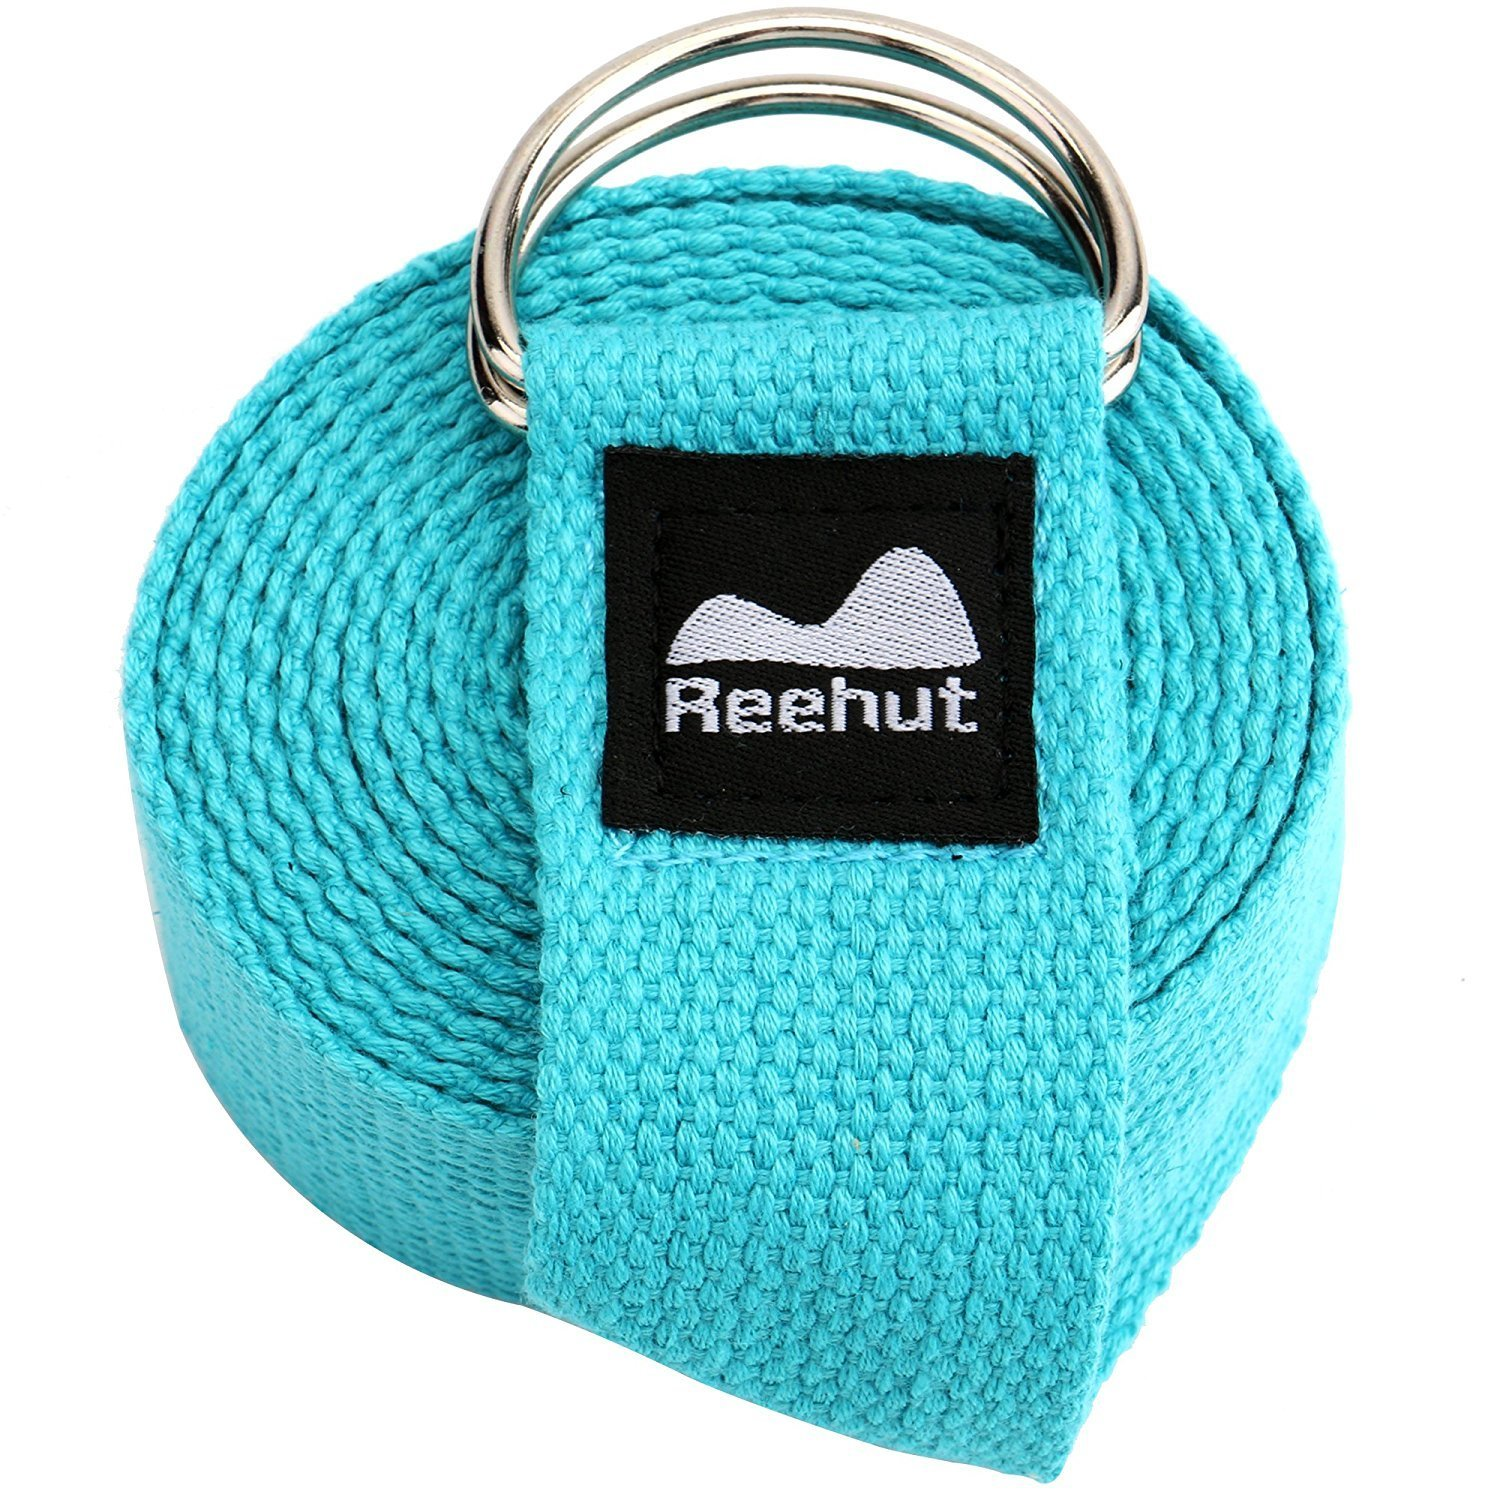 Reehut Fitness Exercise Yoga Strap